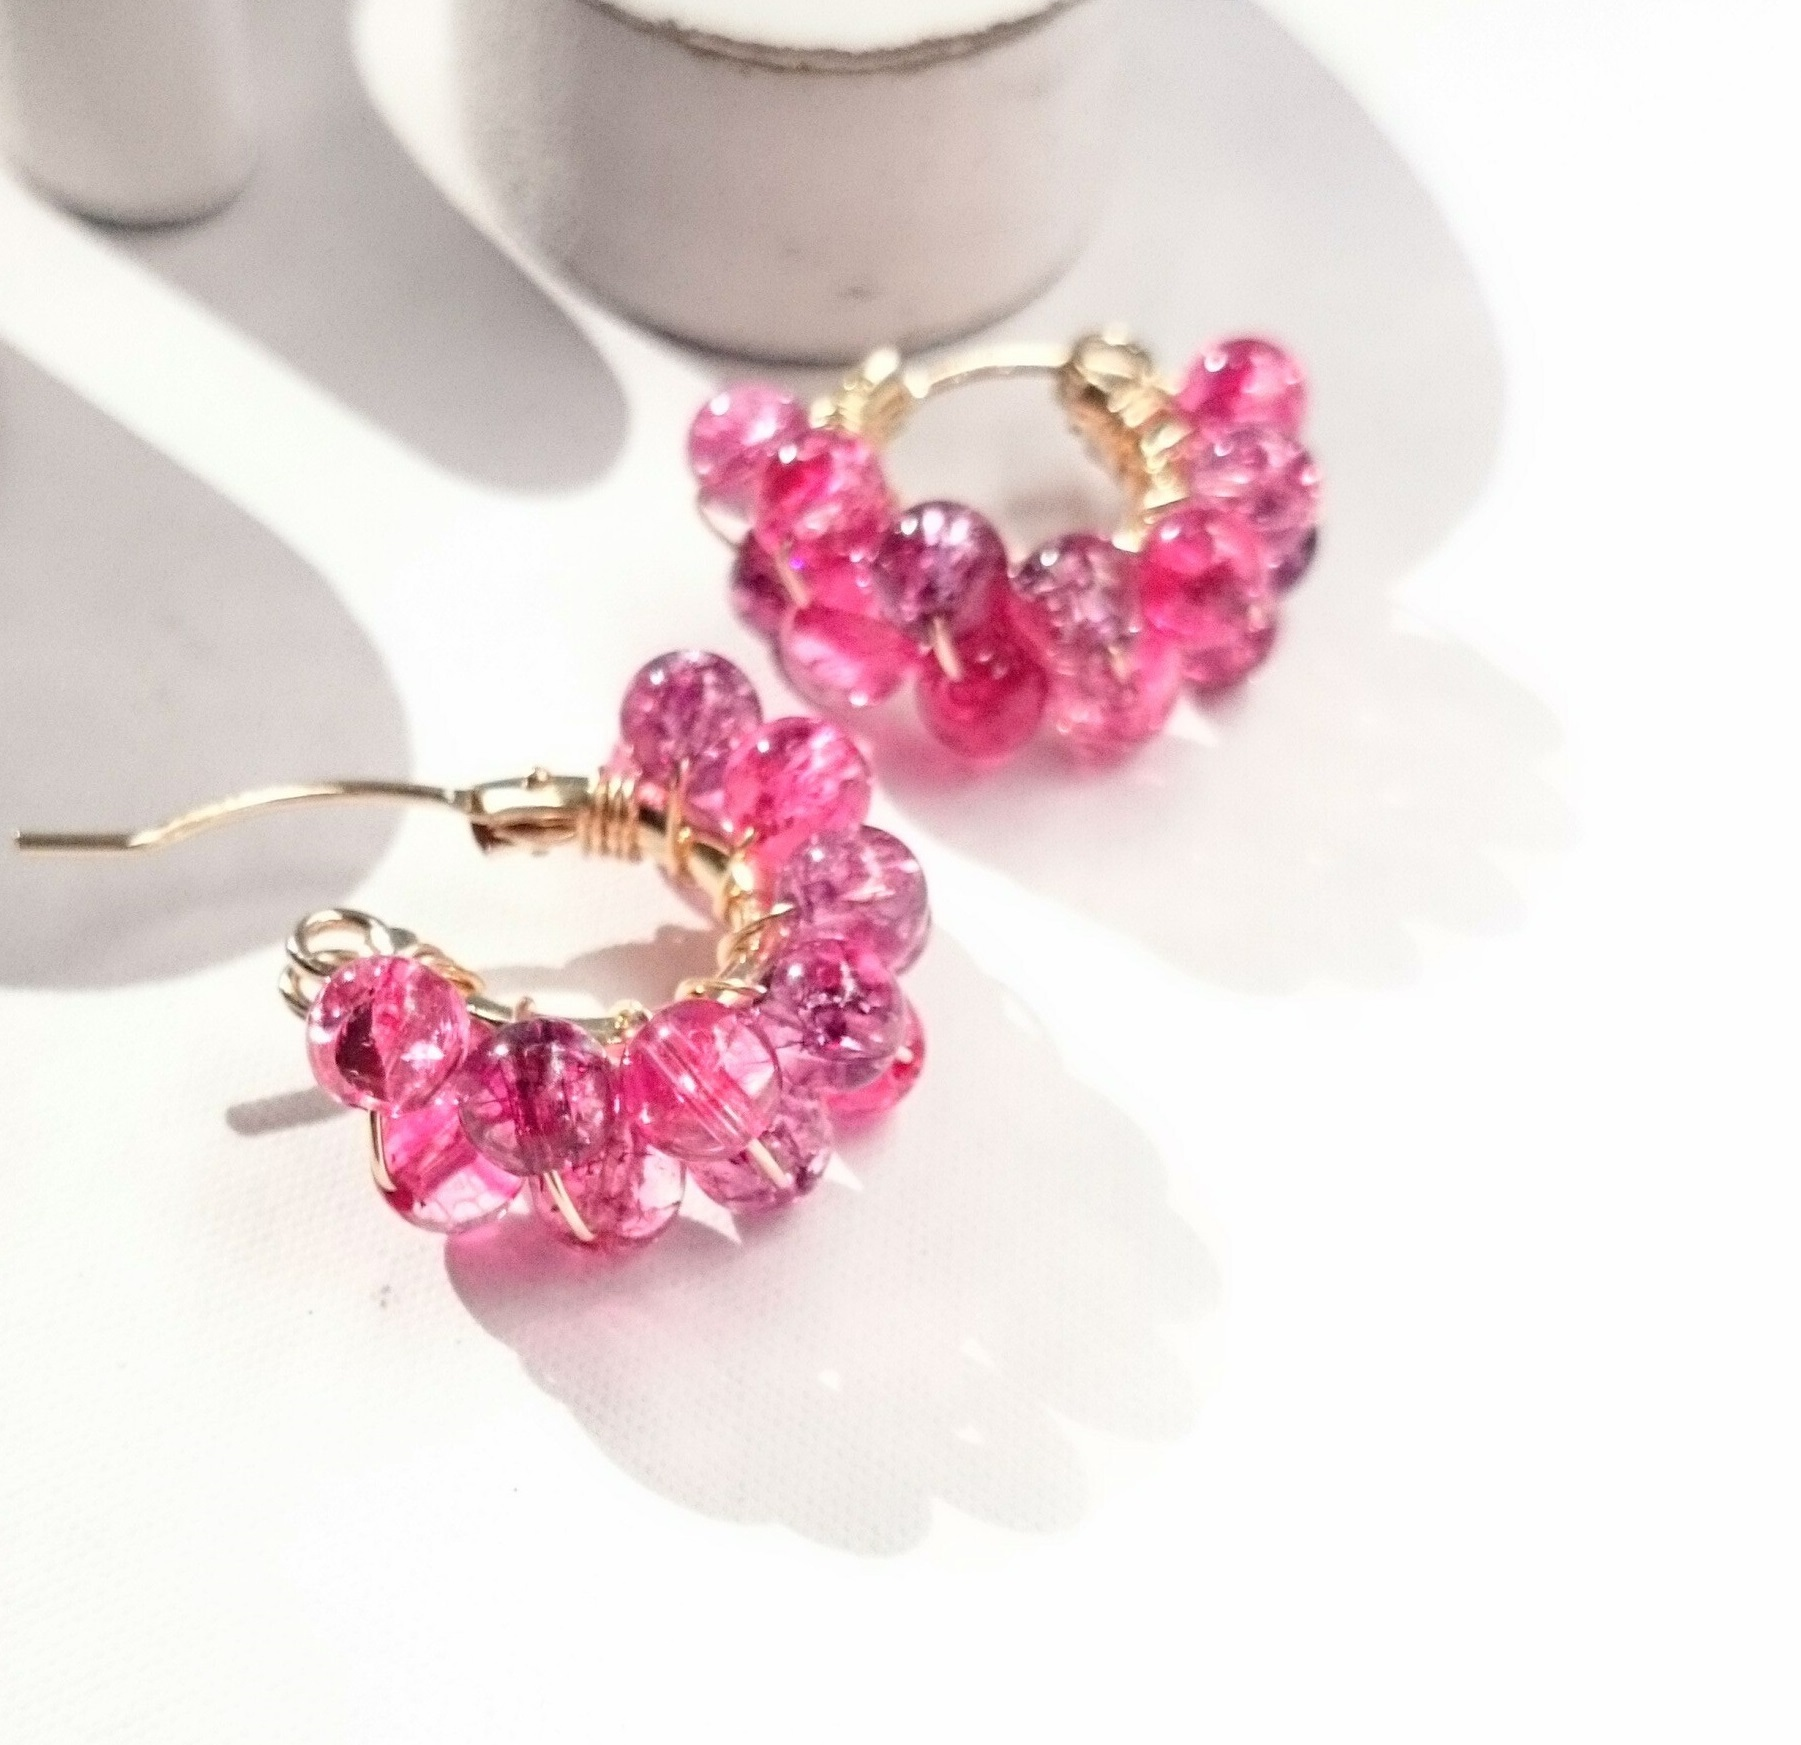 送料無料14kgf♡Spring Jerry multicolored quartz pierce/earring PK 紫陽